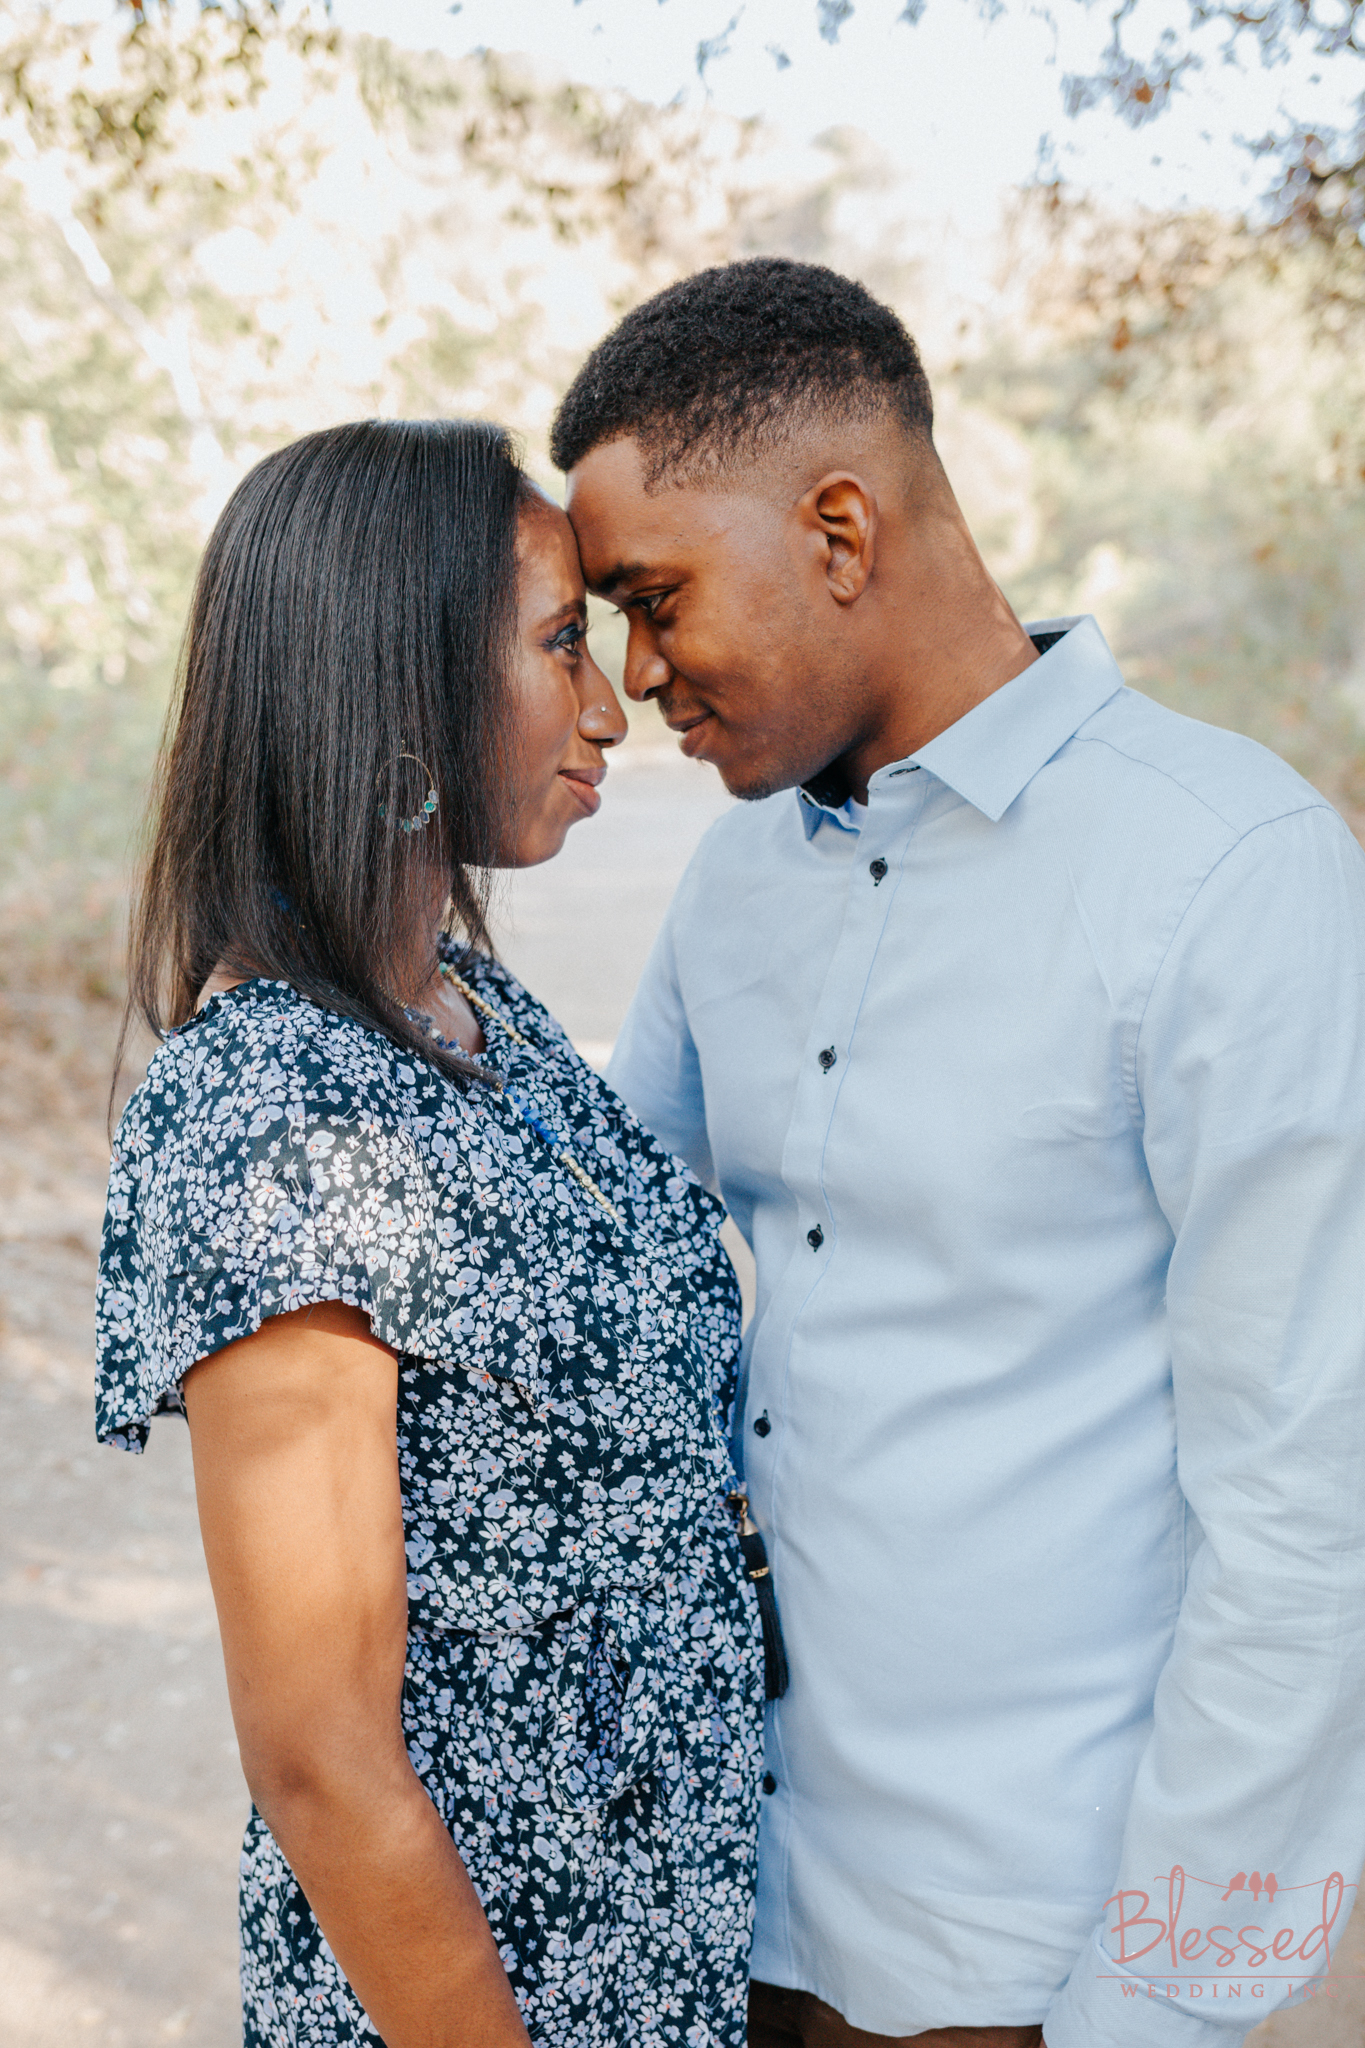 Marian Bear Park Engagement Session by Blessed Wedding Photography  (1 of 25).jpg